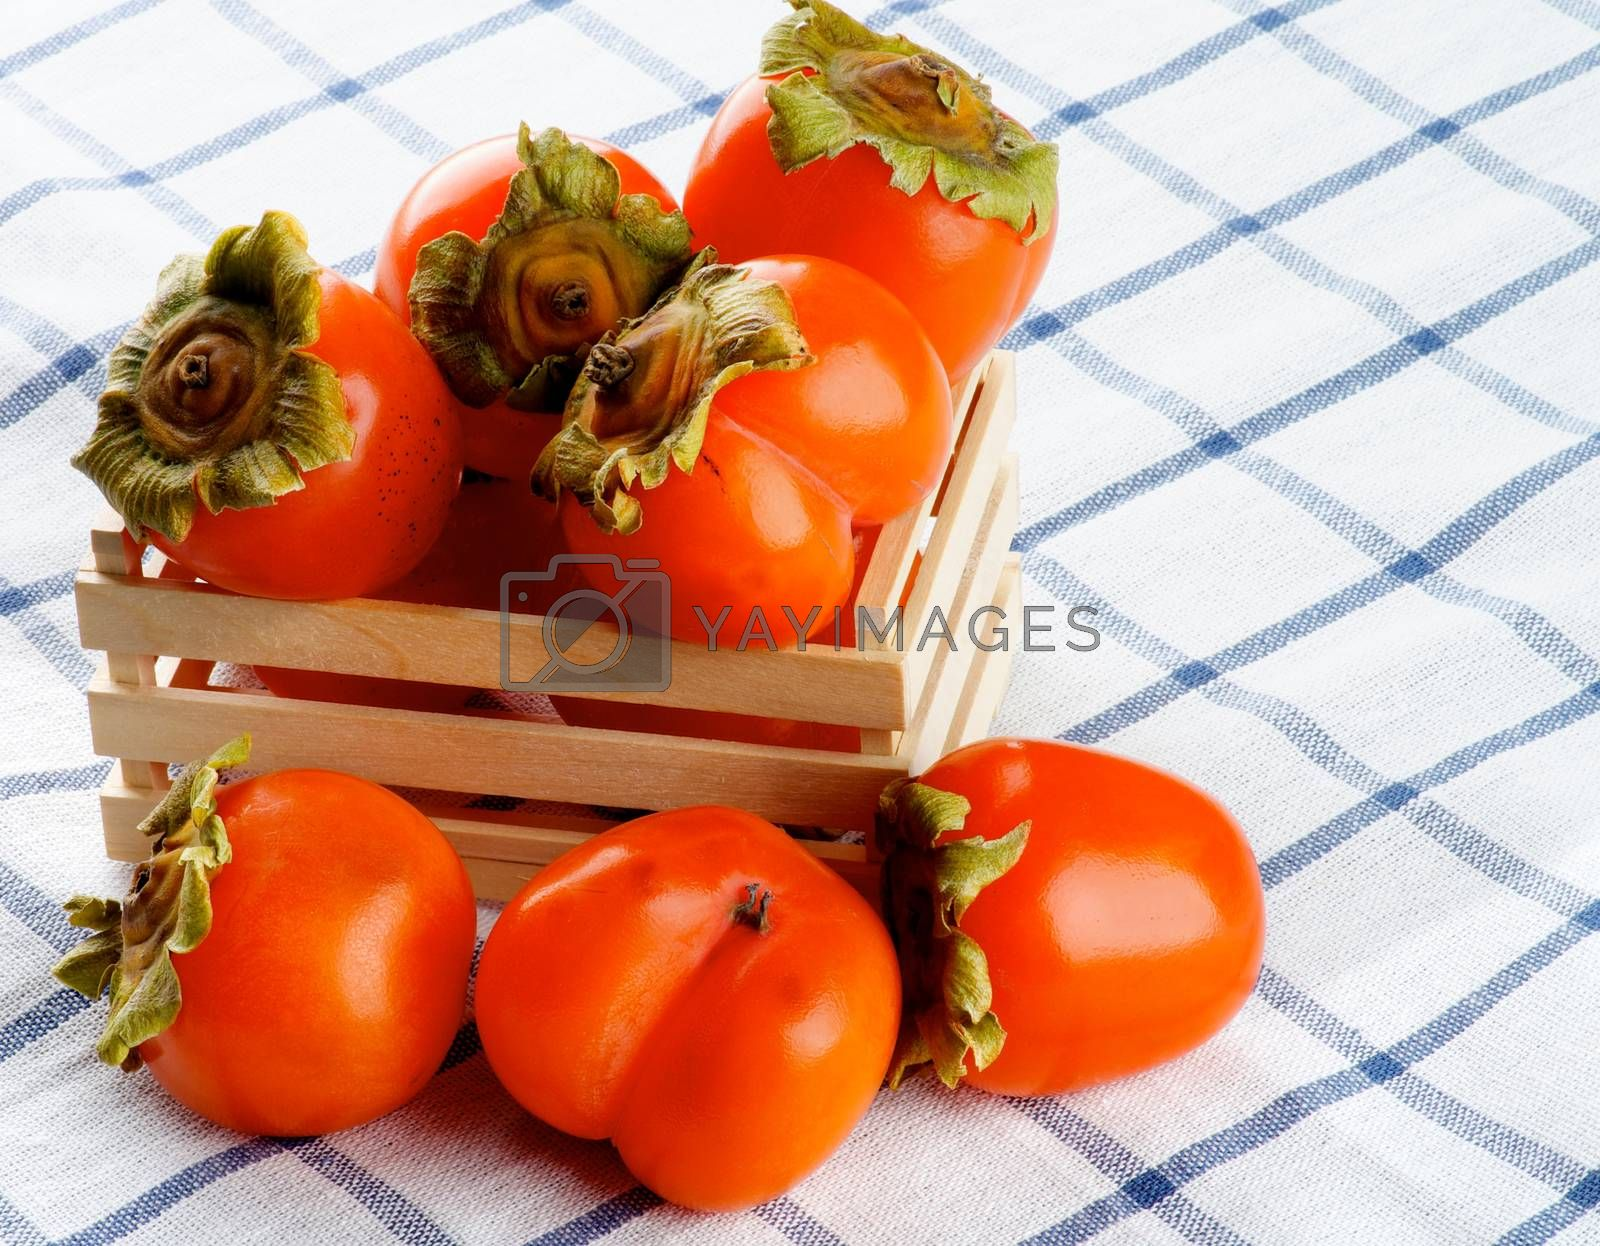 Arrangement of Delicious Raw Persimmon in Wooden Box closeup on Checkered Textile Napkin